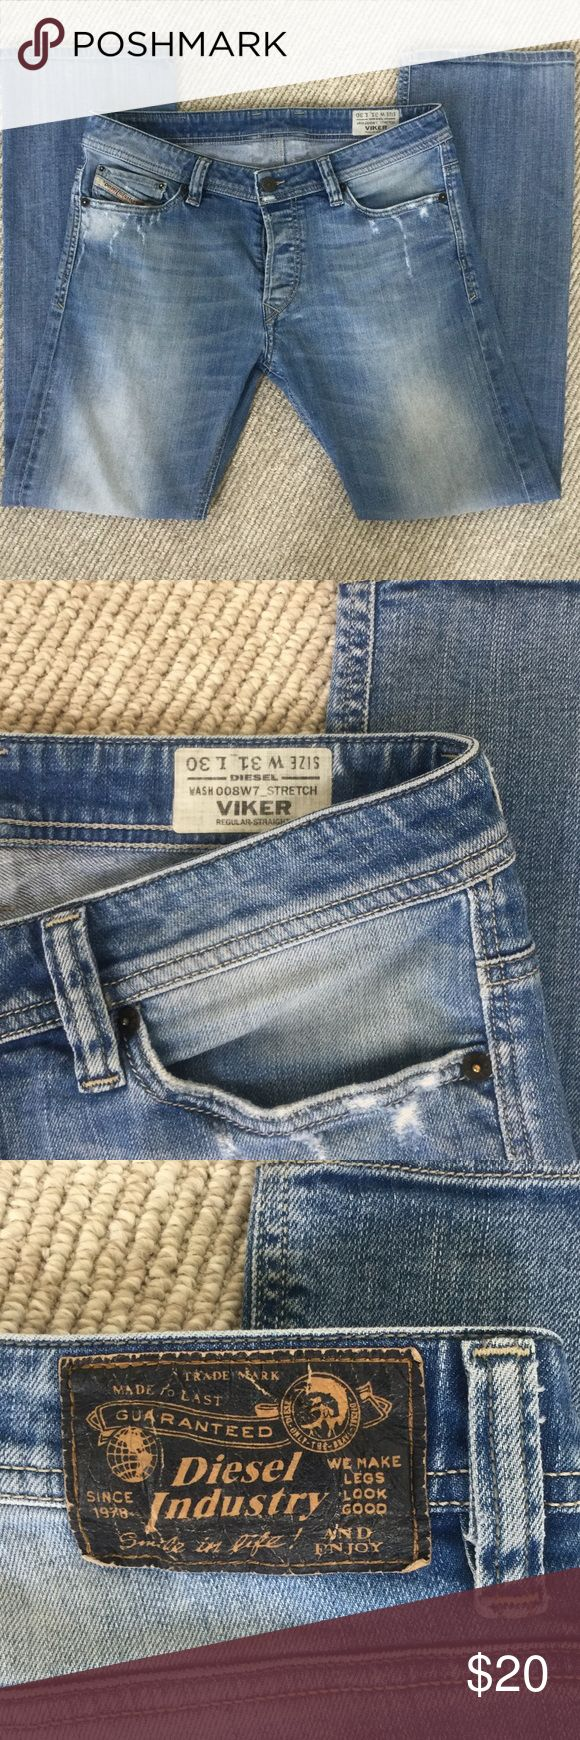 Straight leg Diesel jeans These well-worn Diesel jeans still have a lot of life in them! Waist 31, length 30. Light wash with intentional distressing around the front and back pockets. There is a small hole in one knee (see pic) and little stain on the front left (again...see pics). Priced to sell! Diesel Jeans Straight